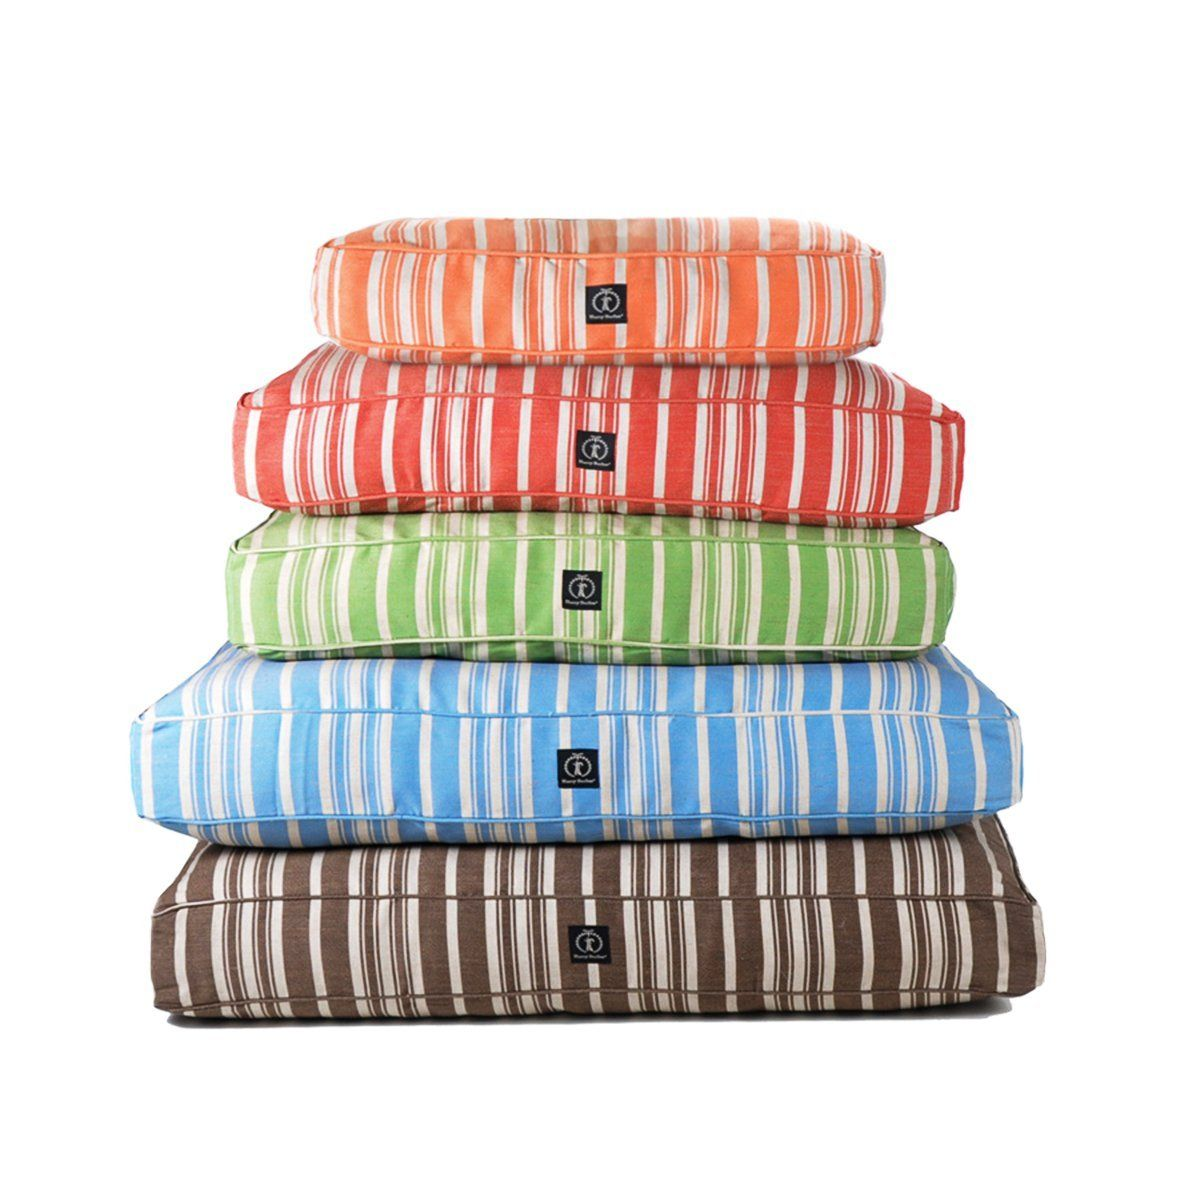 Bed Cover - Classic Stripe Rectangle Dog Bed Cover